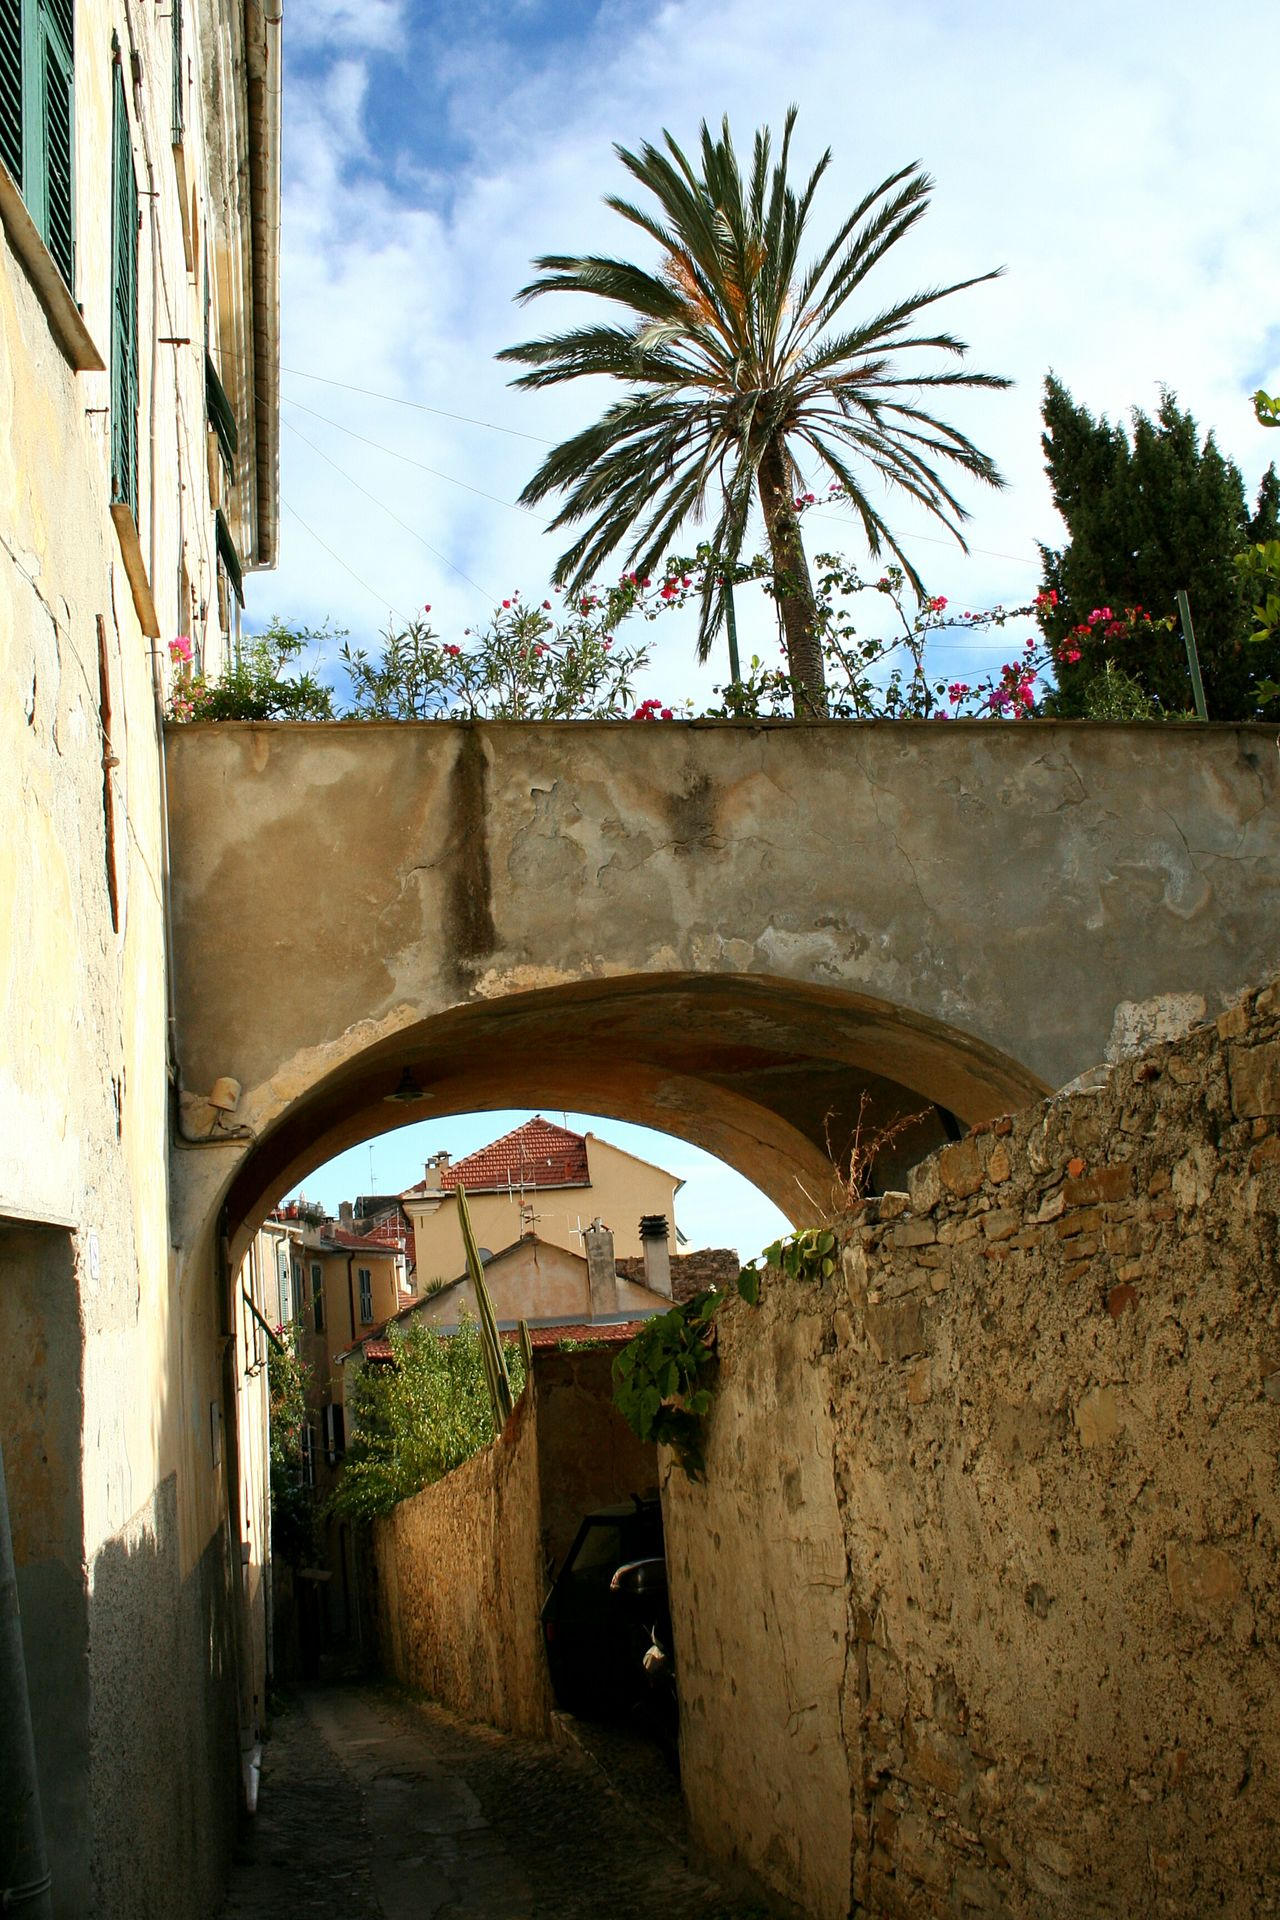 Architecture Palm Tree Built Structure Building Exterior Sky Tree Day Outdoors No People Tourism Travel Summer Vibes Summer Mood Mediterranean Mood Palm And Sky Low Angle View Old Buildings Architectural Details Medieval Italian Village  Mediterranean Village Liguria,Italy Cervo Ligure Vicolo Del Paese Narrow Street